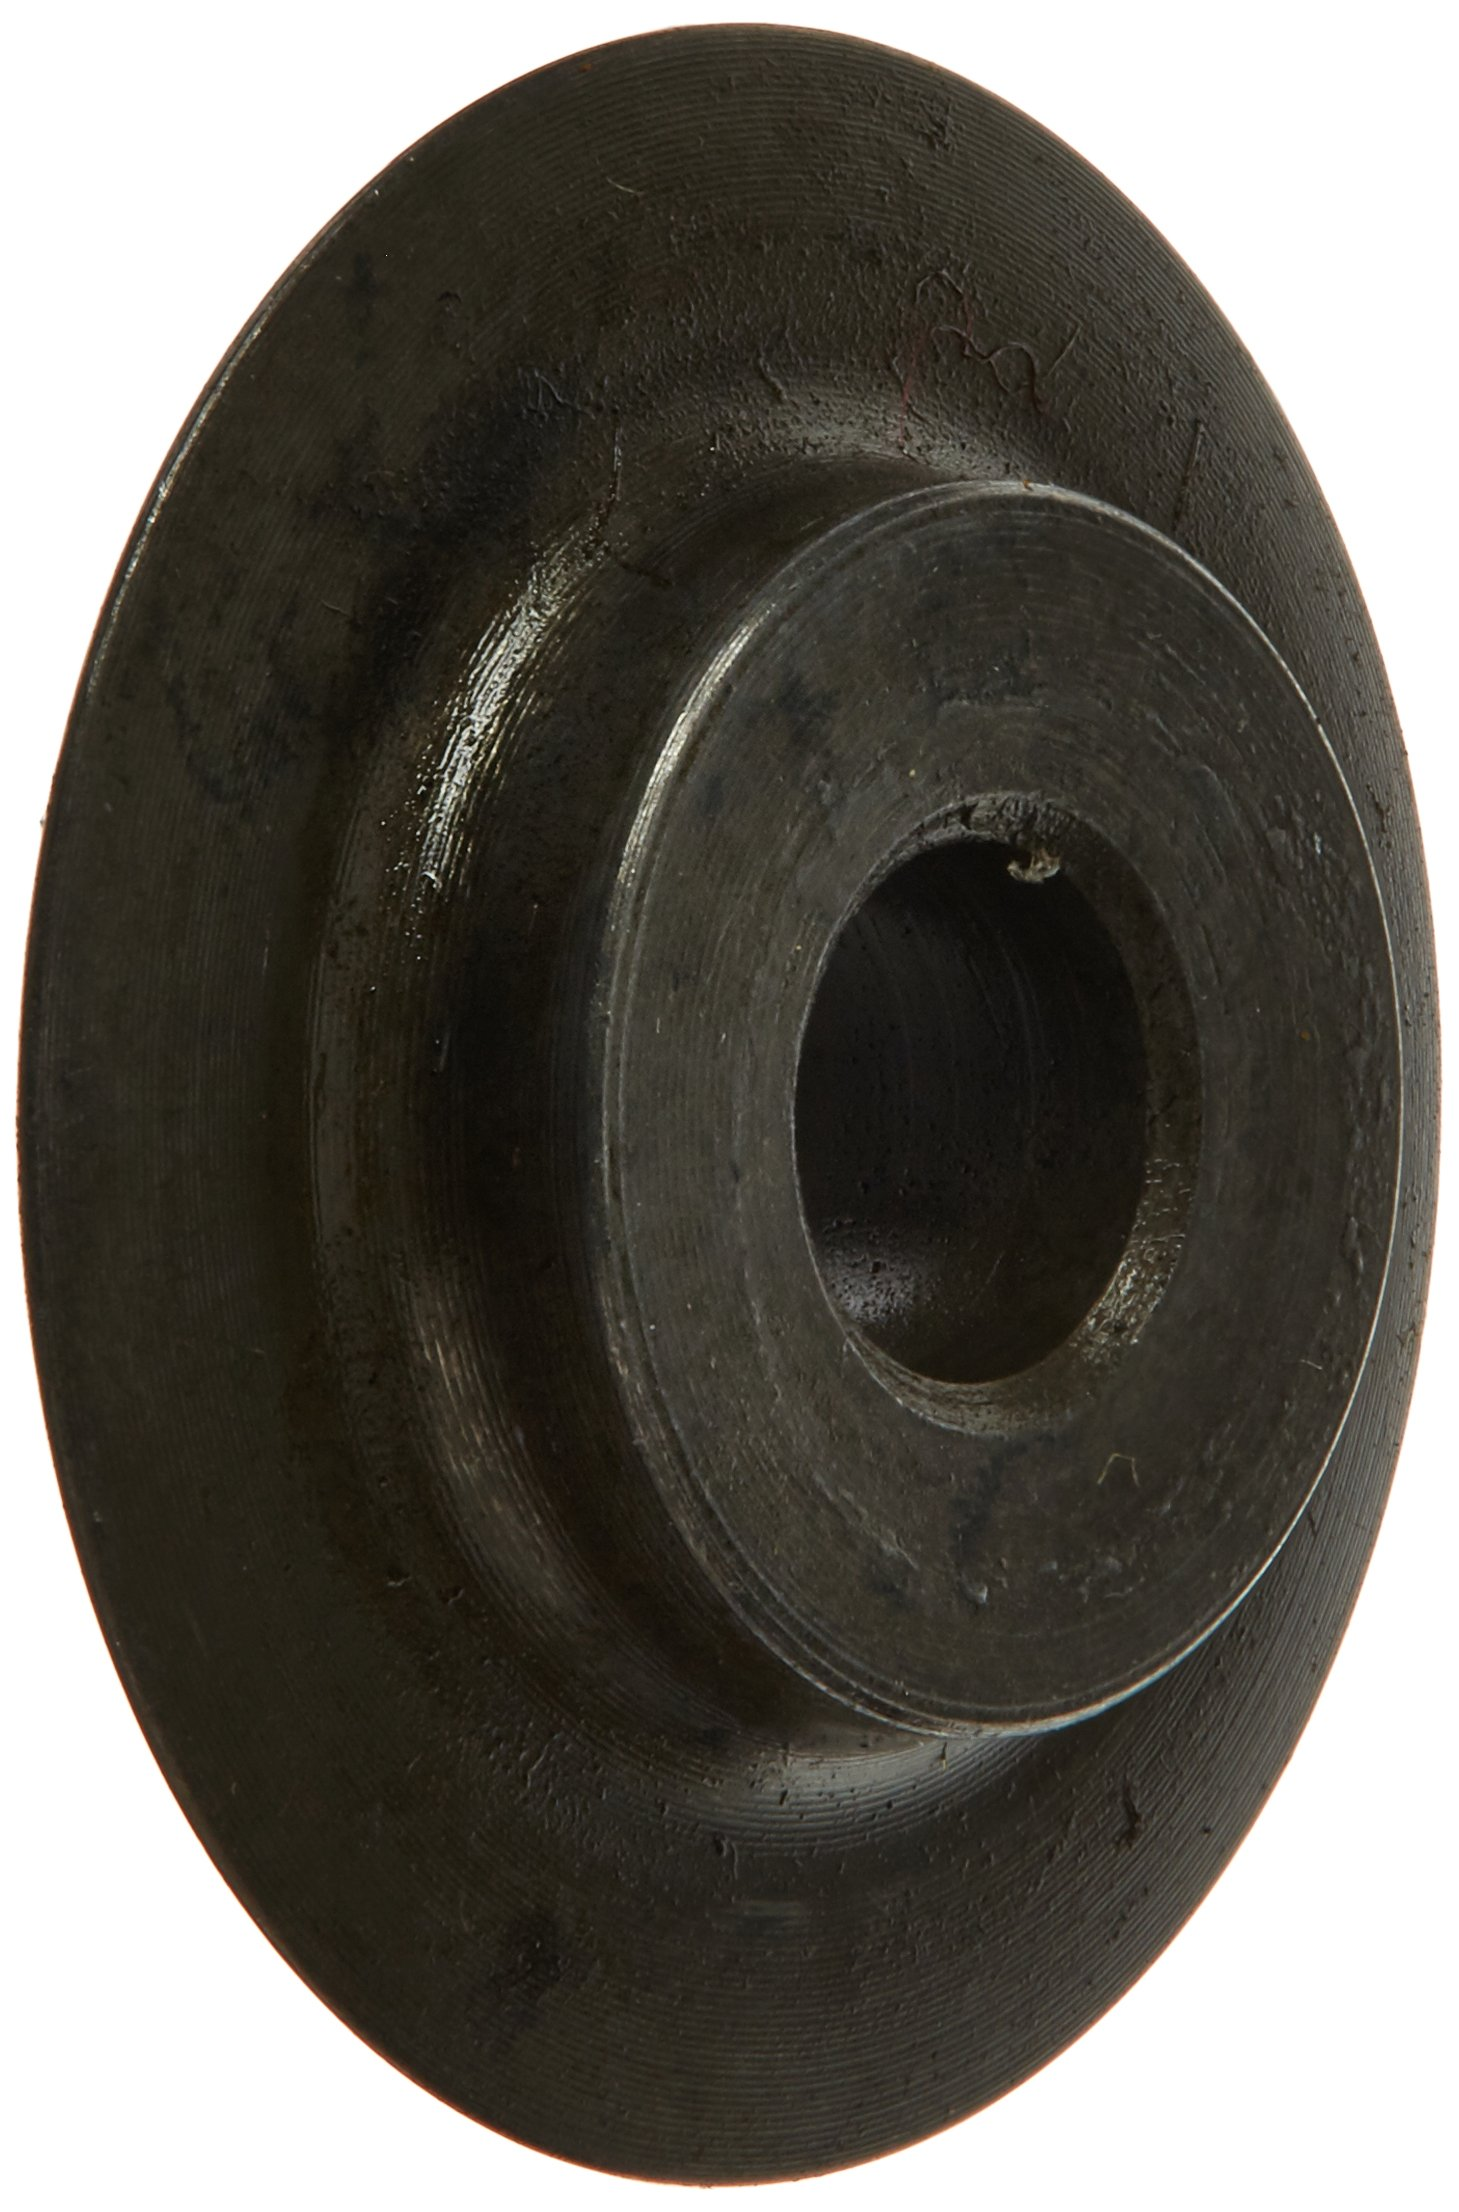 Reed Tool 2PK-OSS Cutter Wheels for Tubing Cutters, 2-Pack